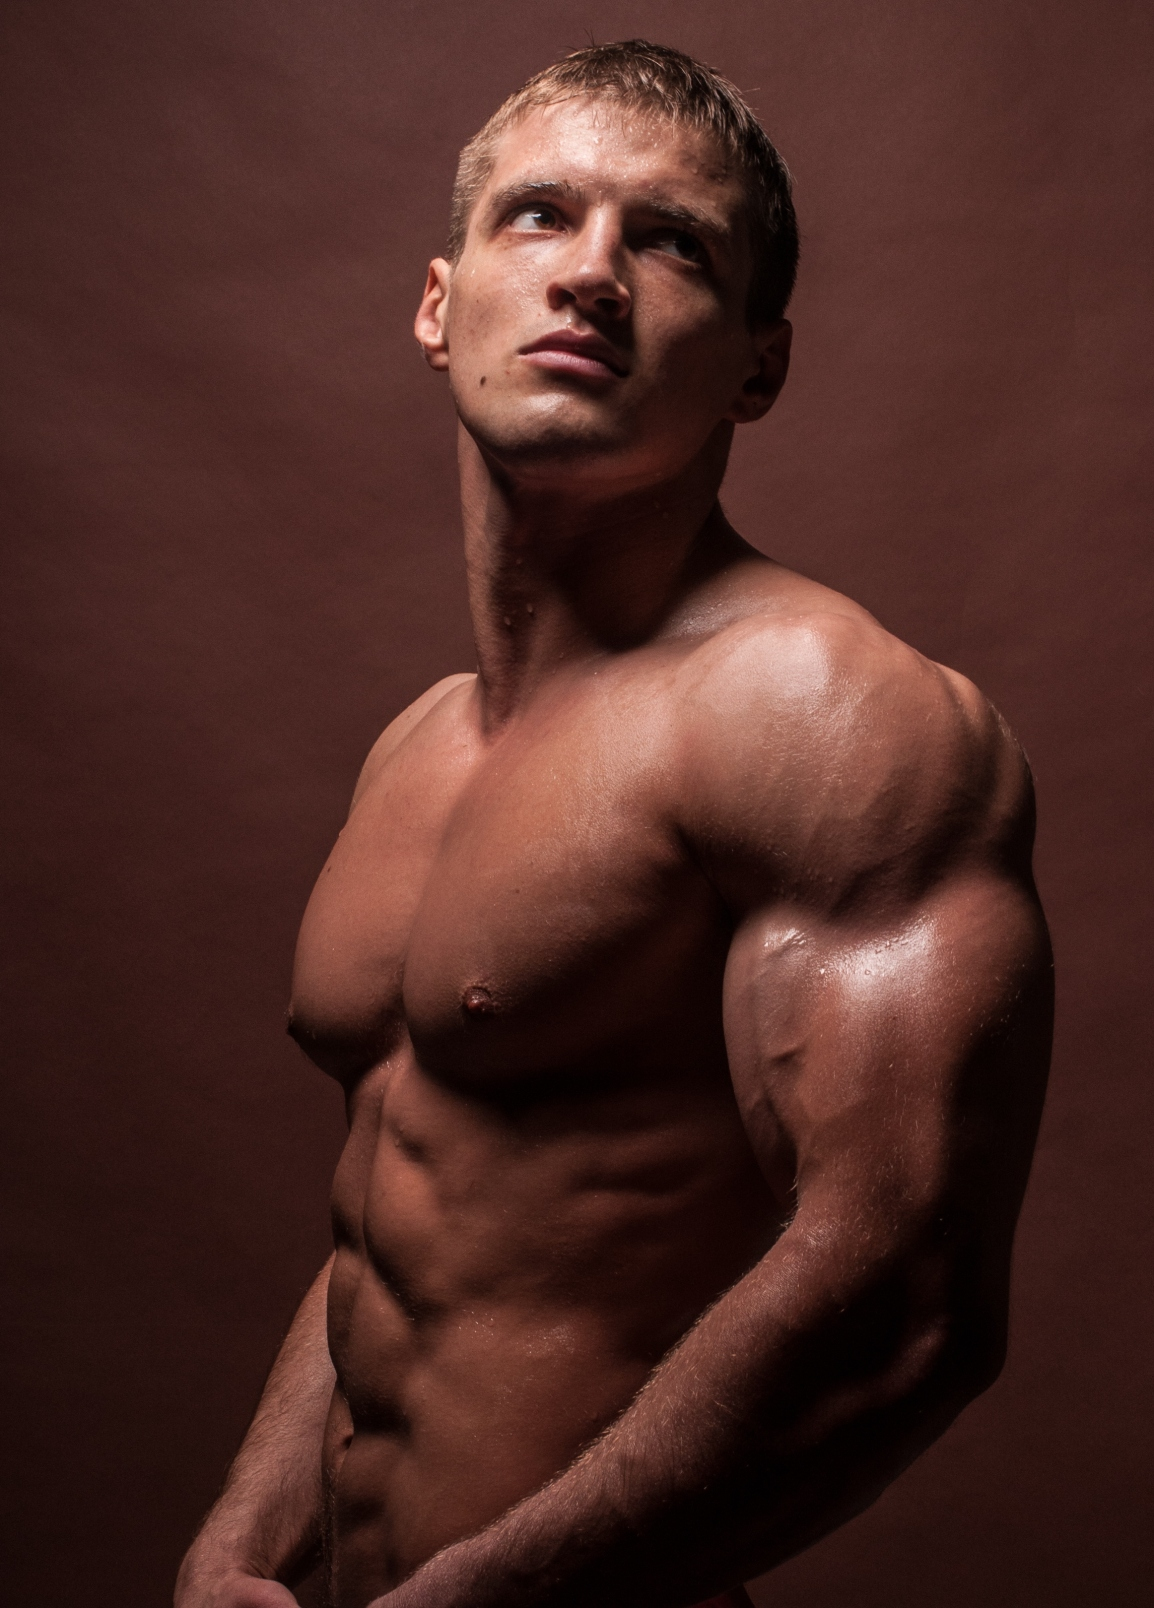 Young muscled male model posing shirtless in studio